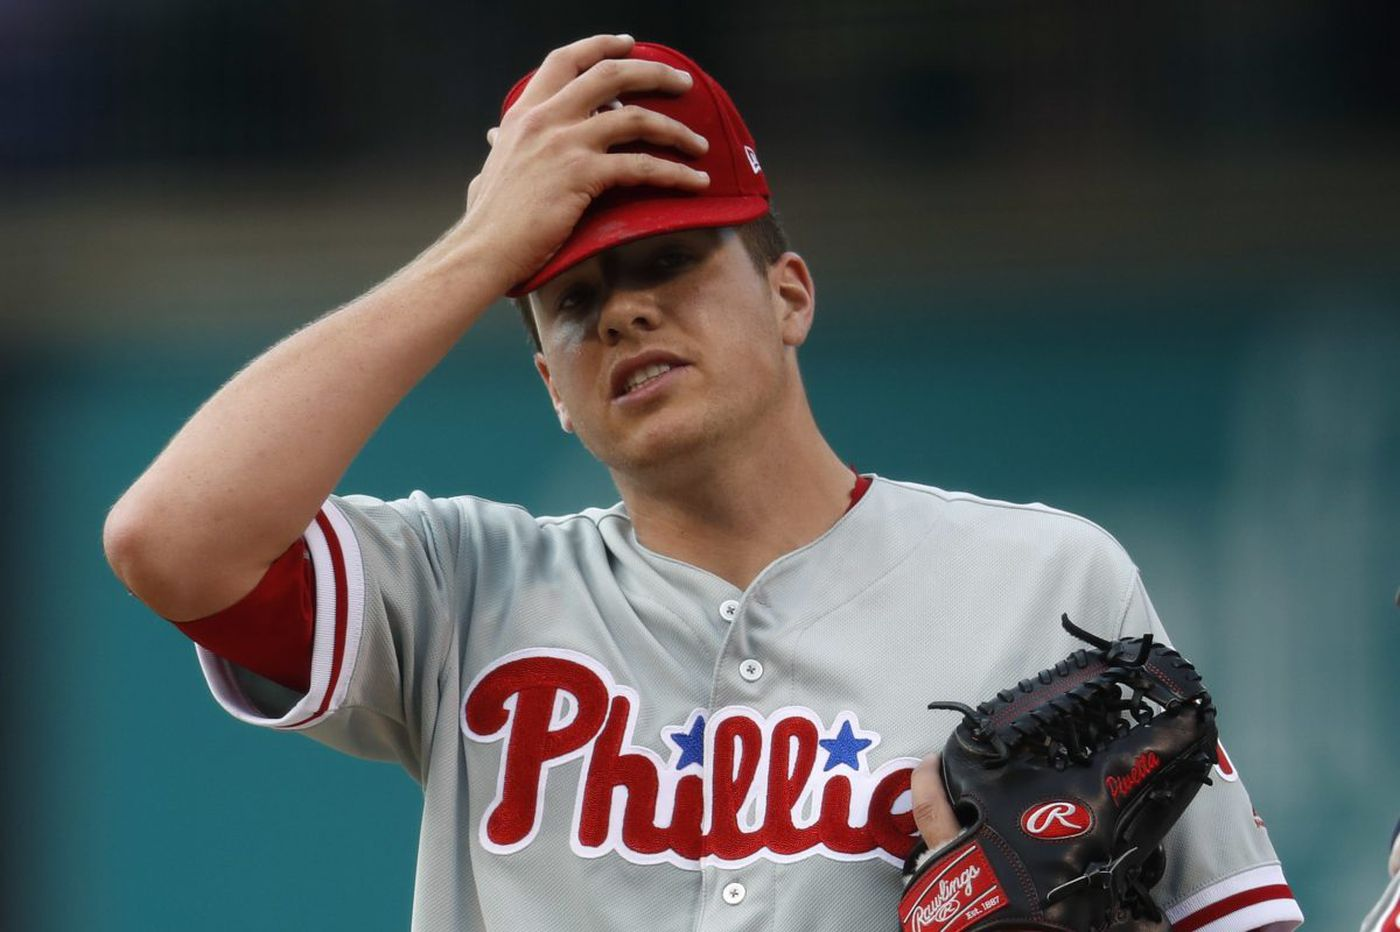 In loss to Rockies, Phillies focus on Leiter's good instead of Pivetta's bad